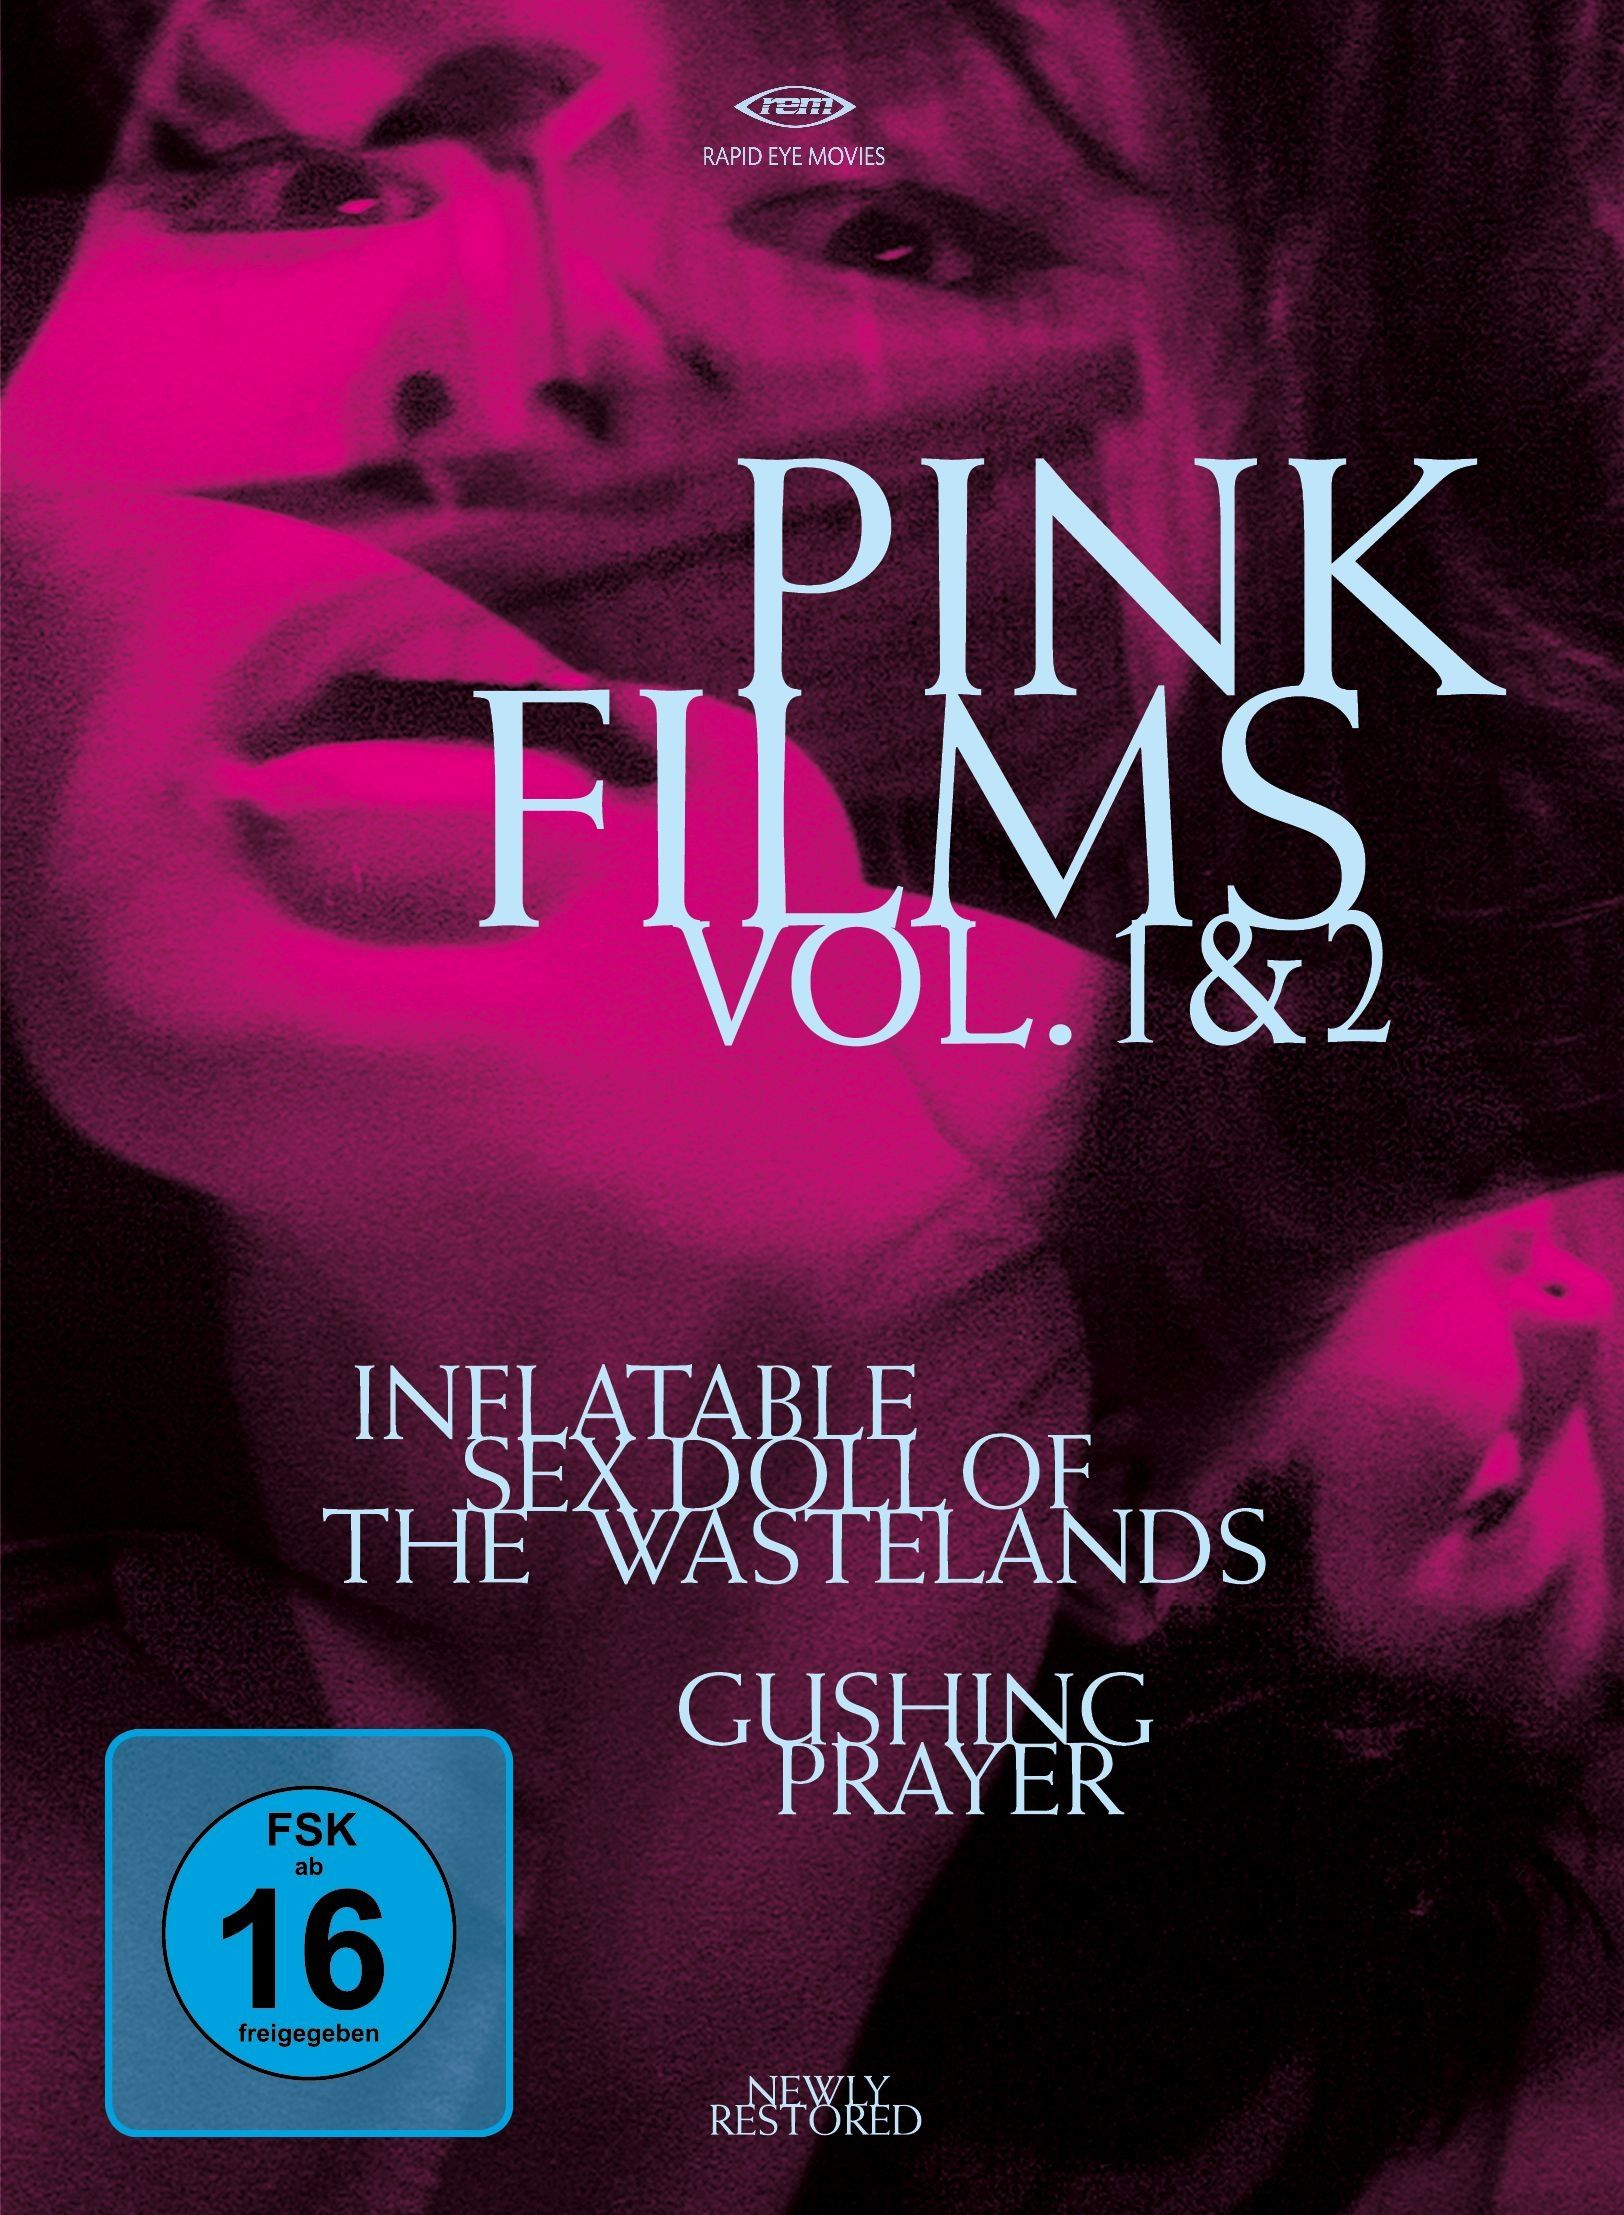 Inflatable Sex Doll of the Wastelands / Gushing Prayer (Pink Films Vol. 1 & 2) (OmU) (DVD + BLURAY)